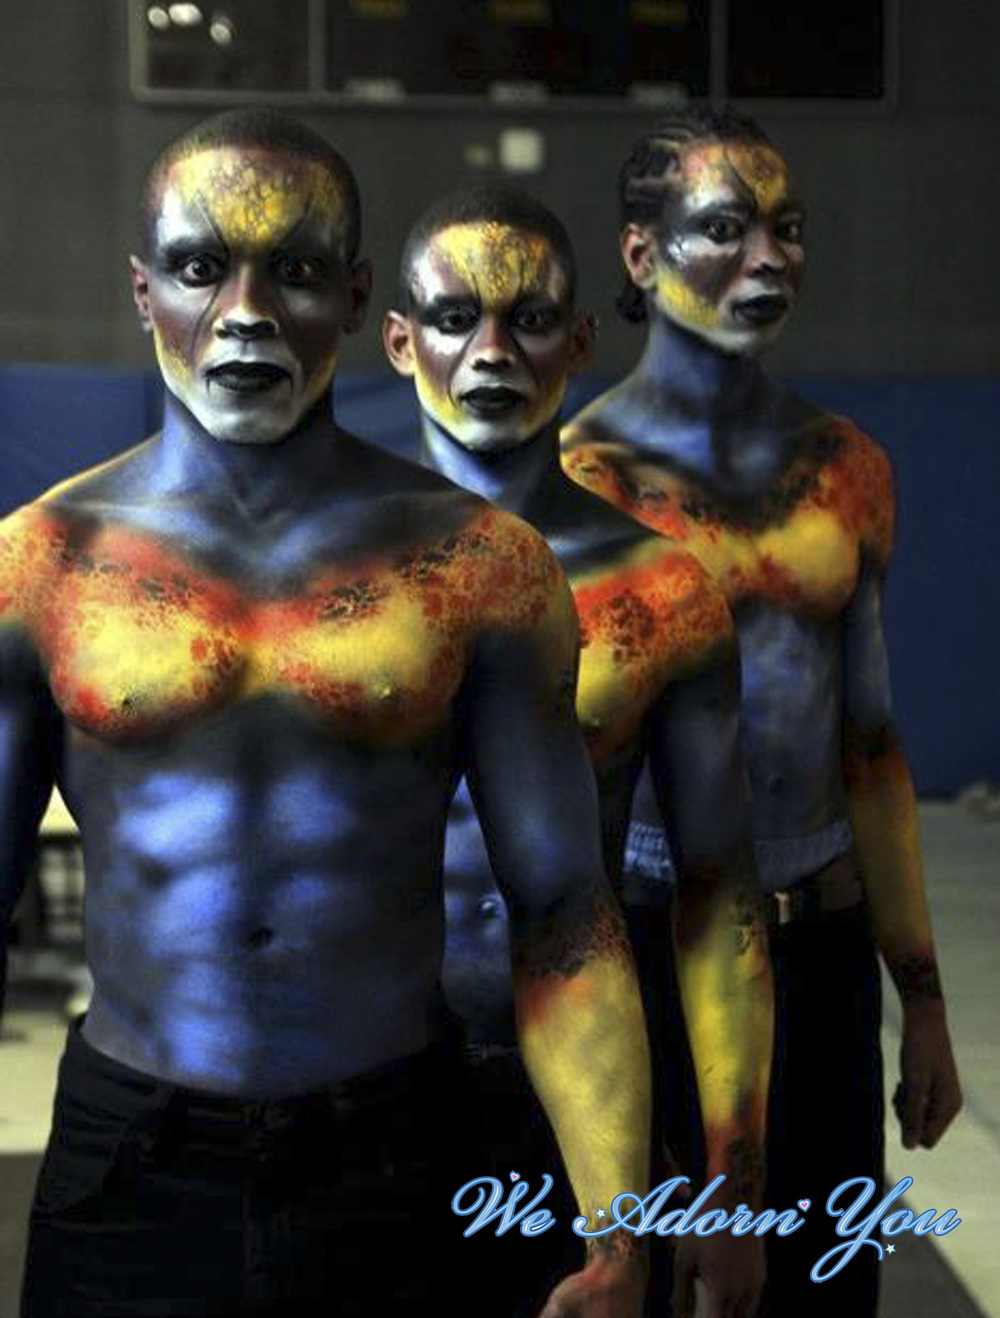 Body Painting NYU - We Adorn You.jpg